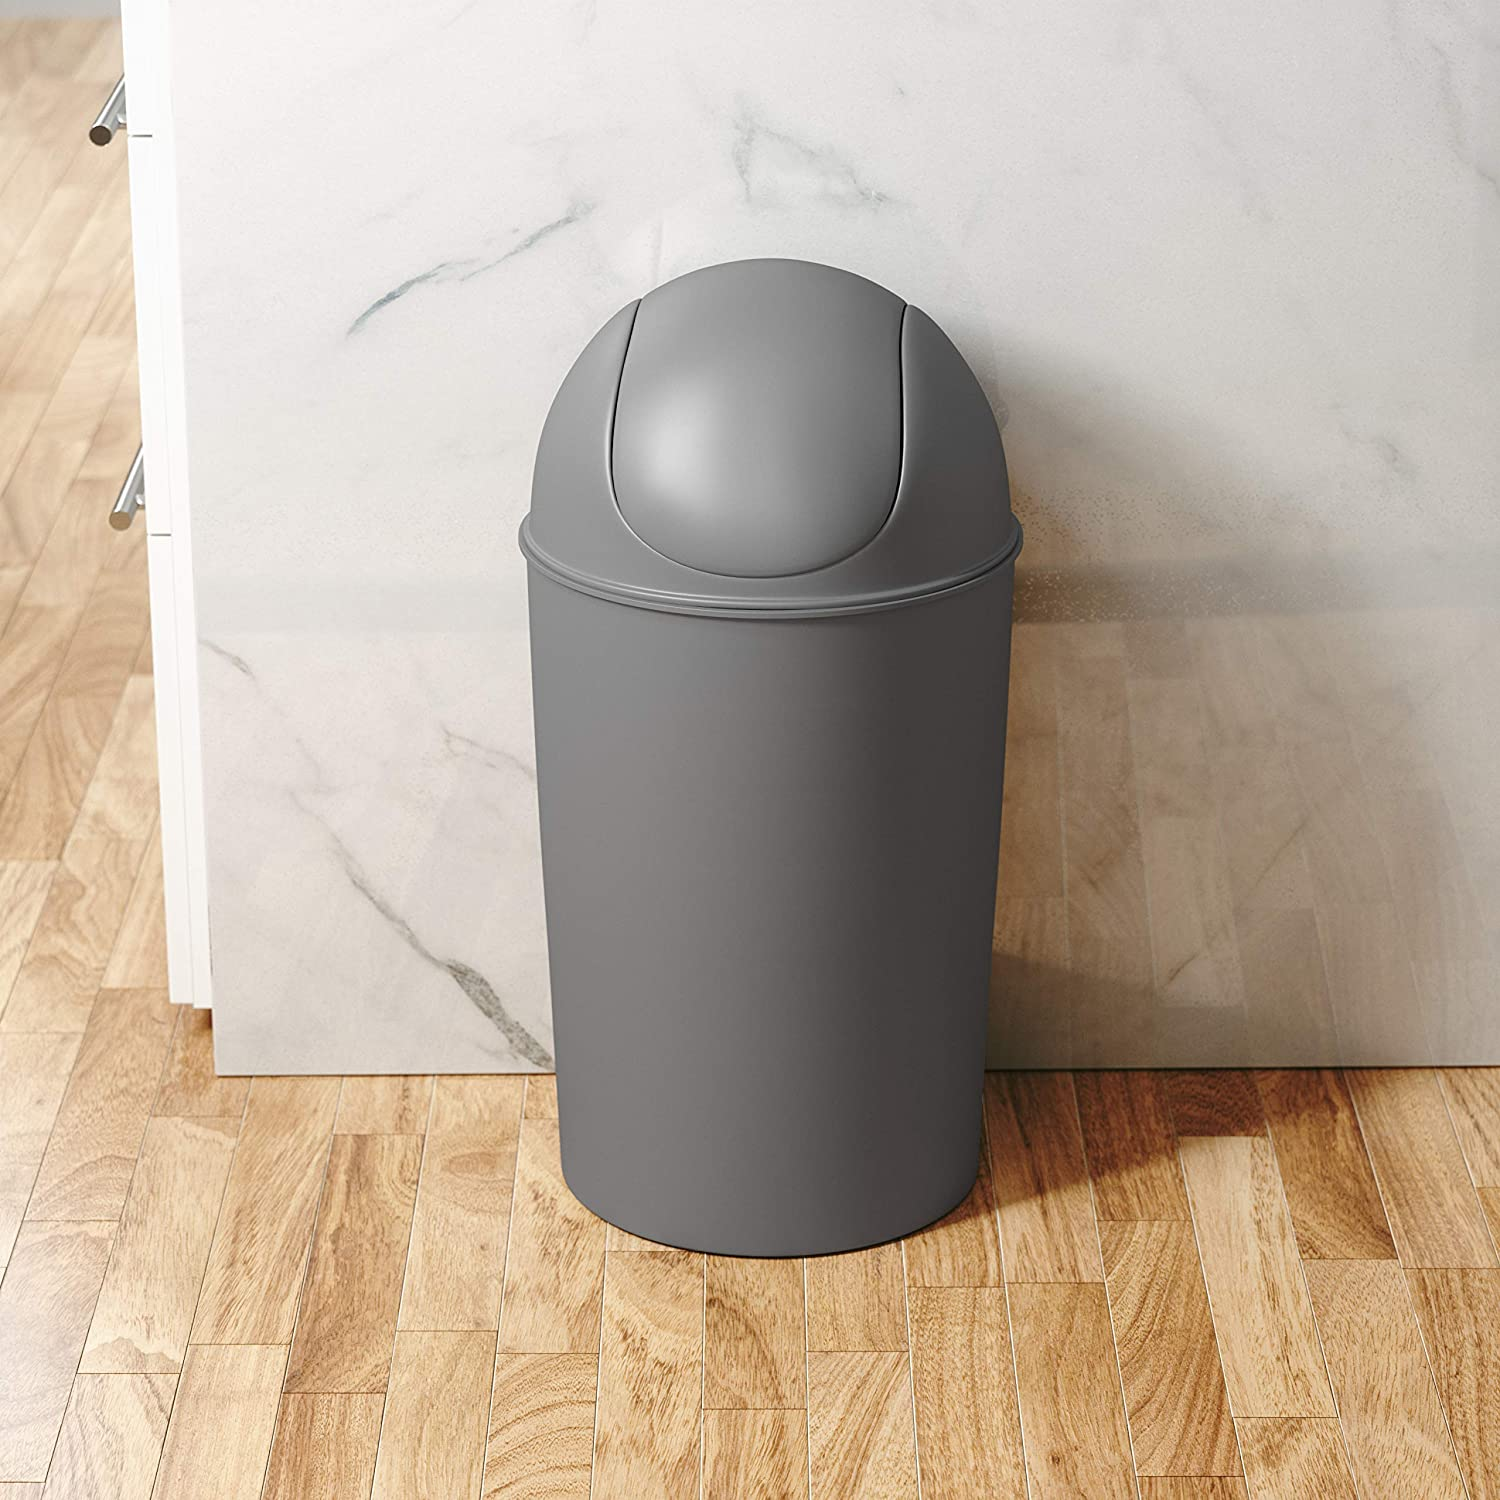 Charcoal Umbra Grand Swing Top Garbage Large Capacity 10.25 Gallon Kitchen Trash Can with Lid Indoor//Outdoor Use